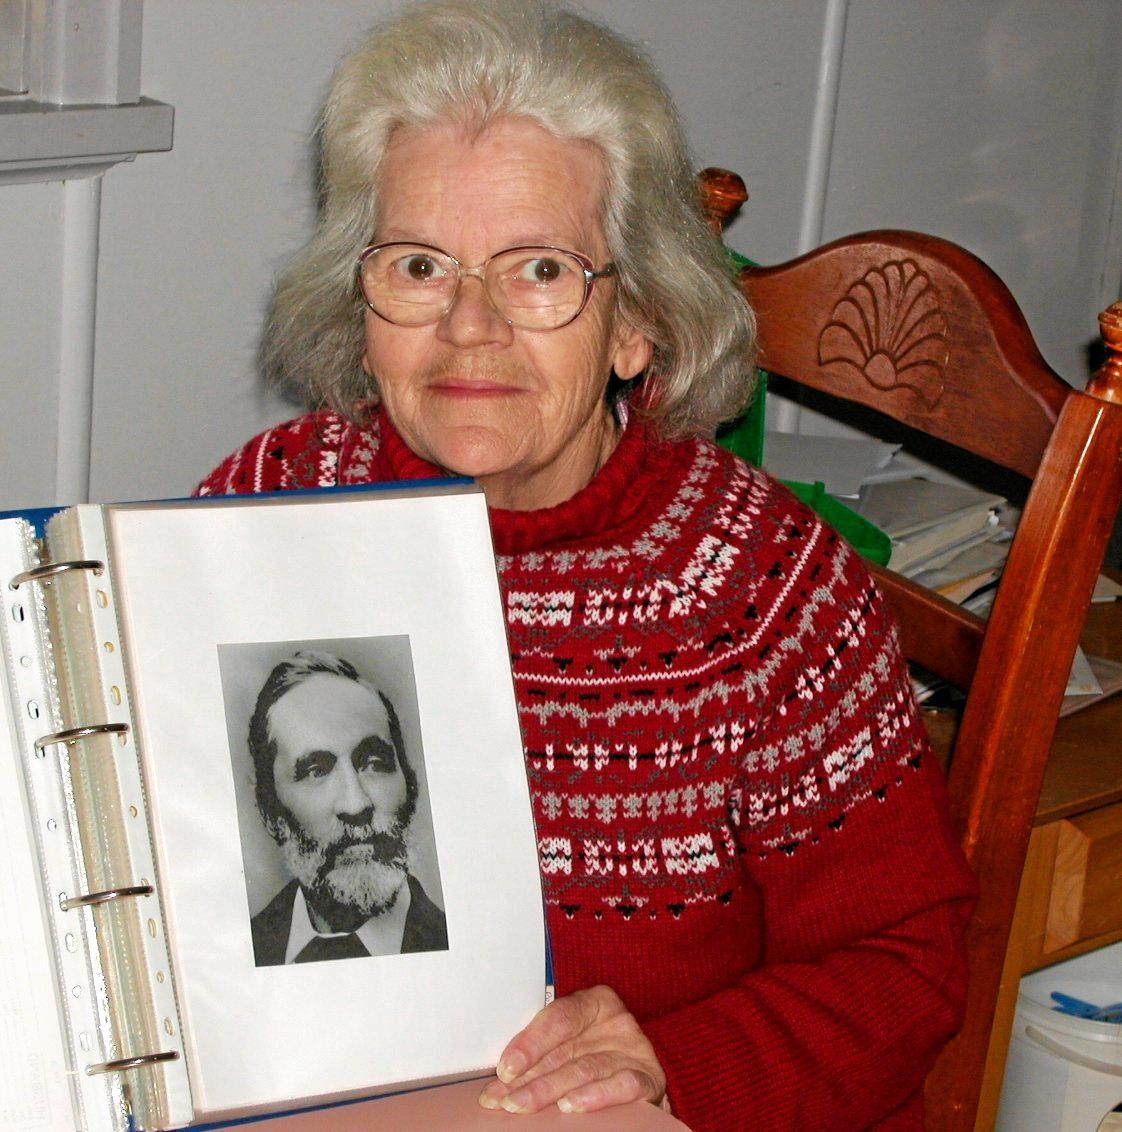 Gail Clerke, who was a distant relative of Frederick Roche, lived in Dalby for a time. She displays a portrait of Frederick Roche.